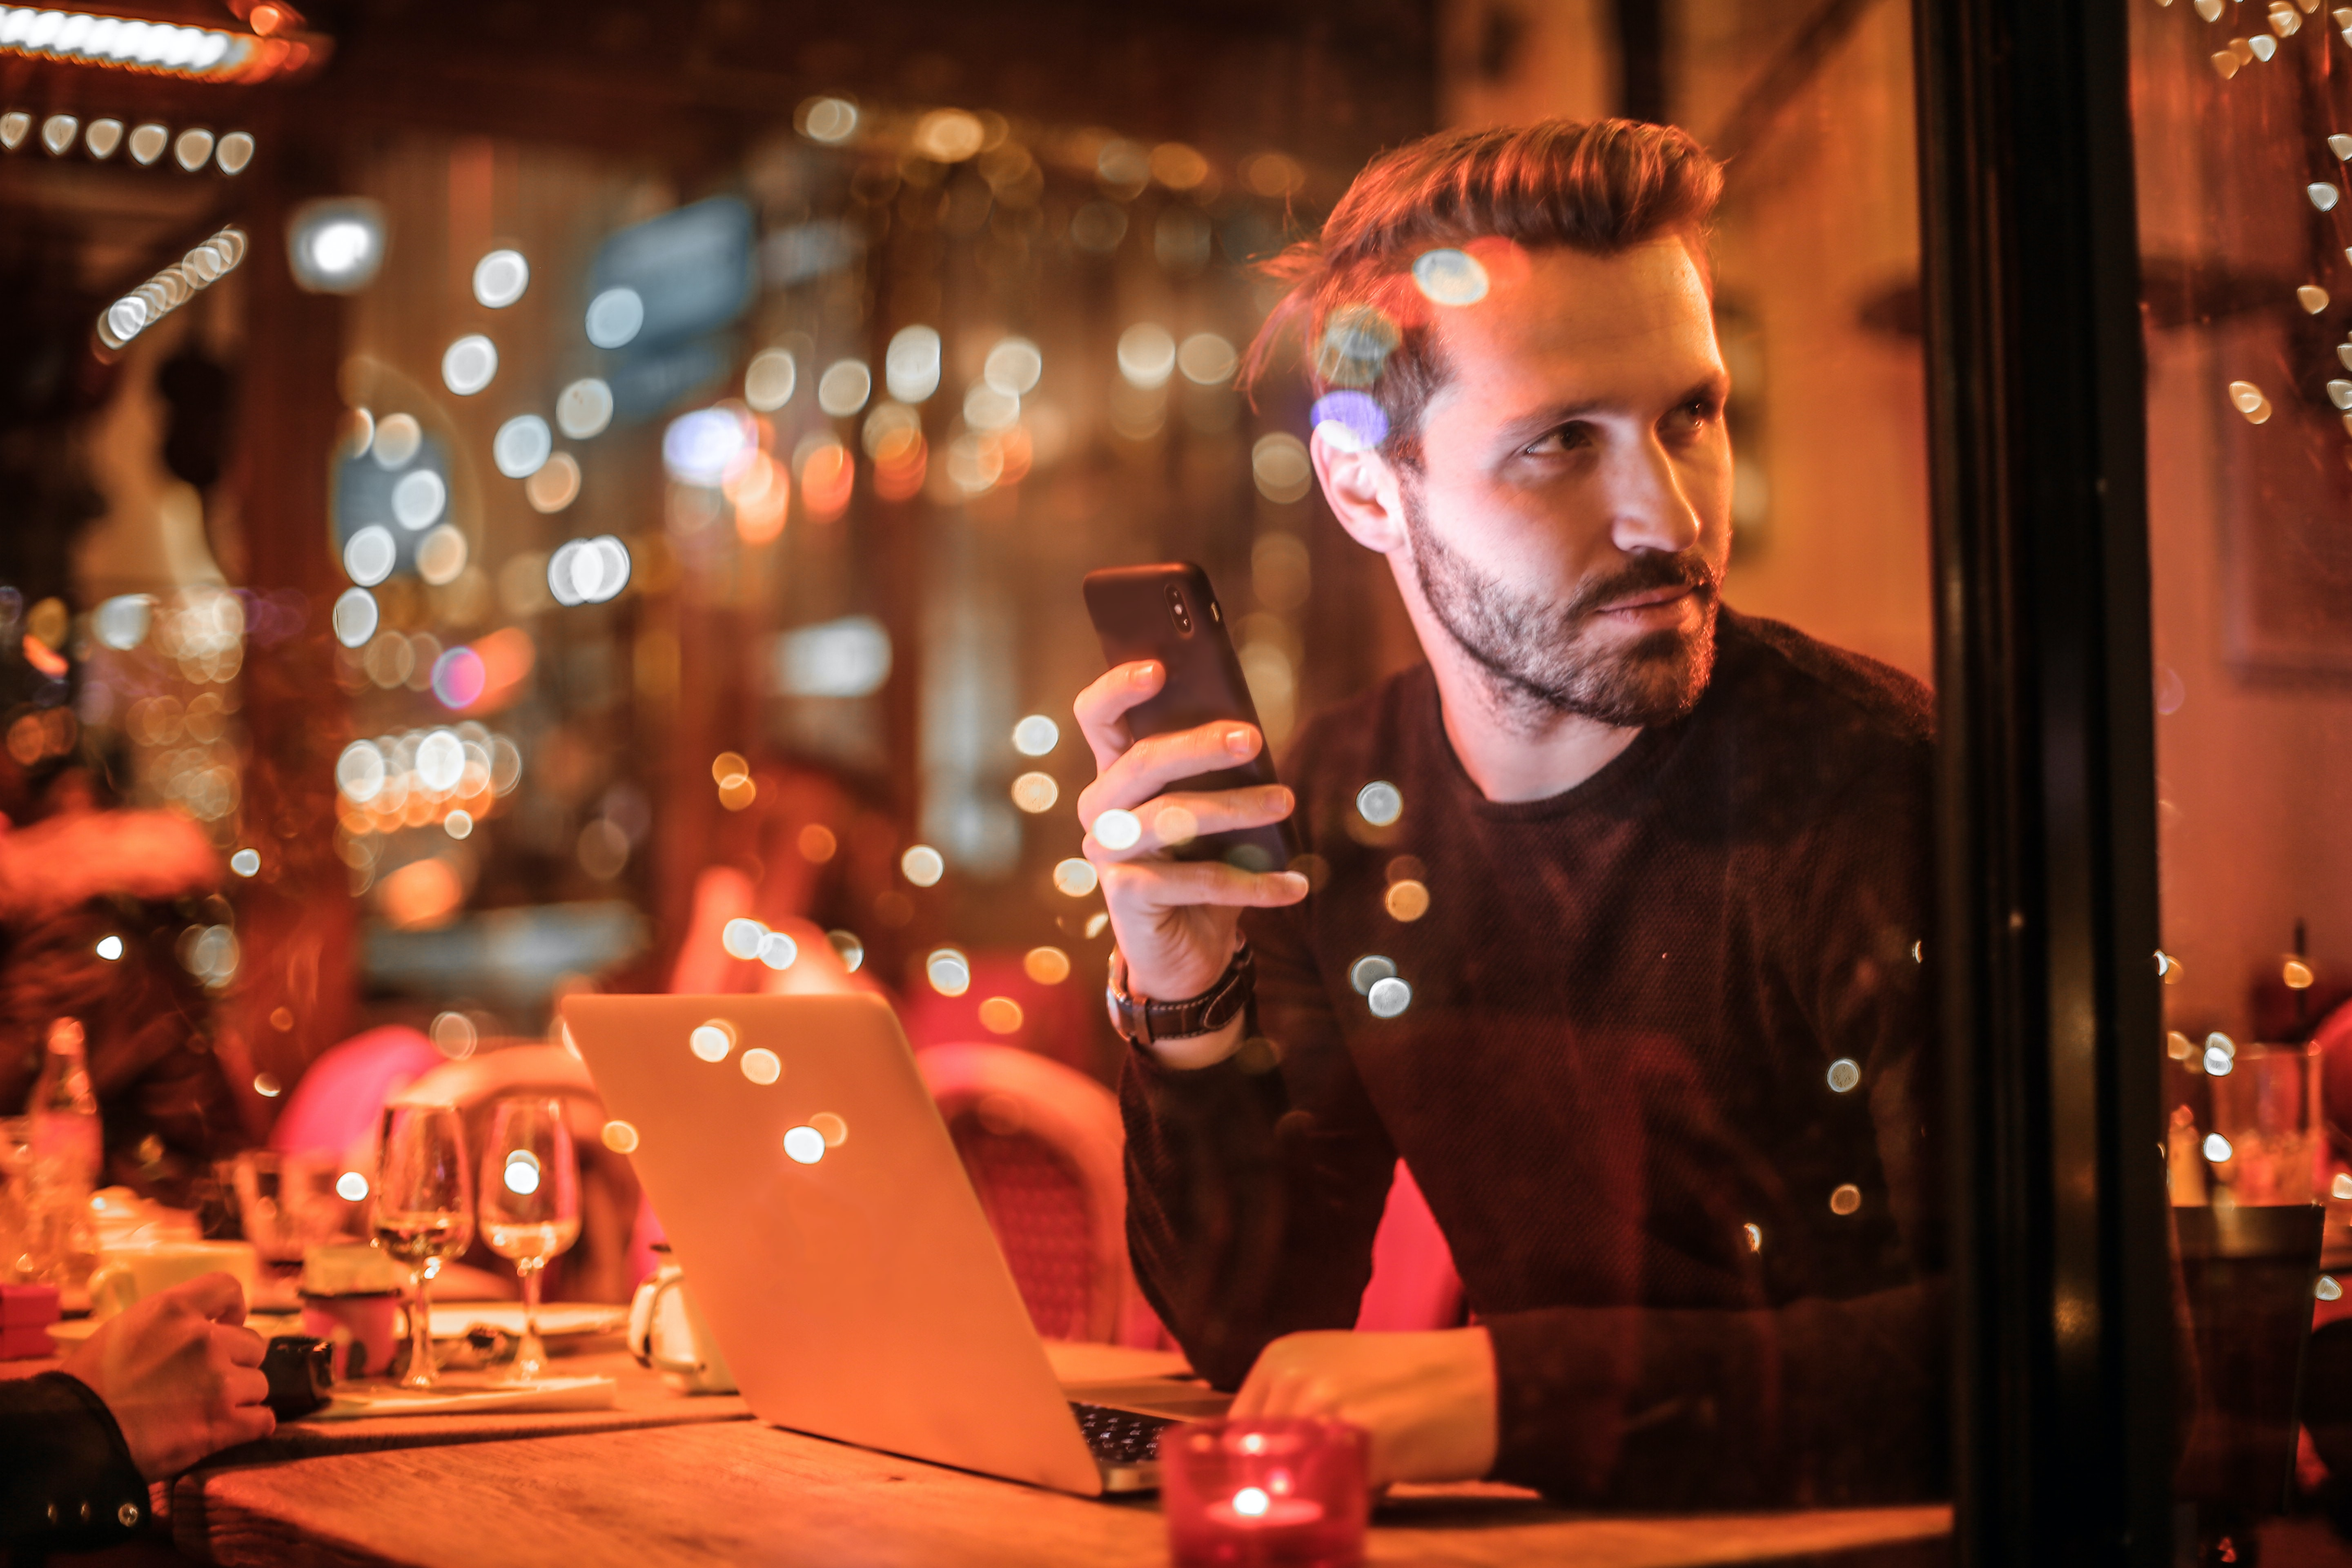 man holding smartphone beside table